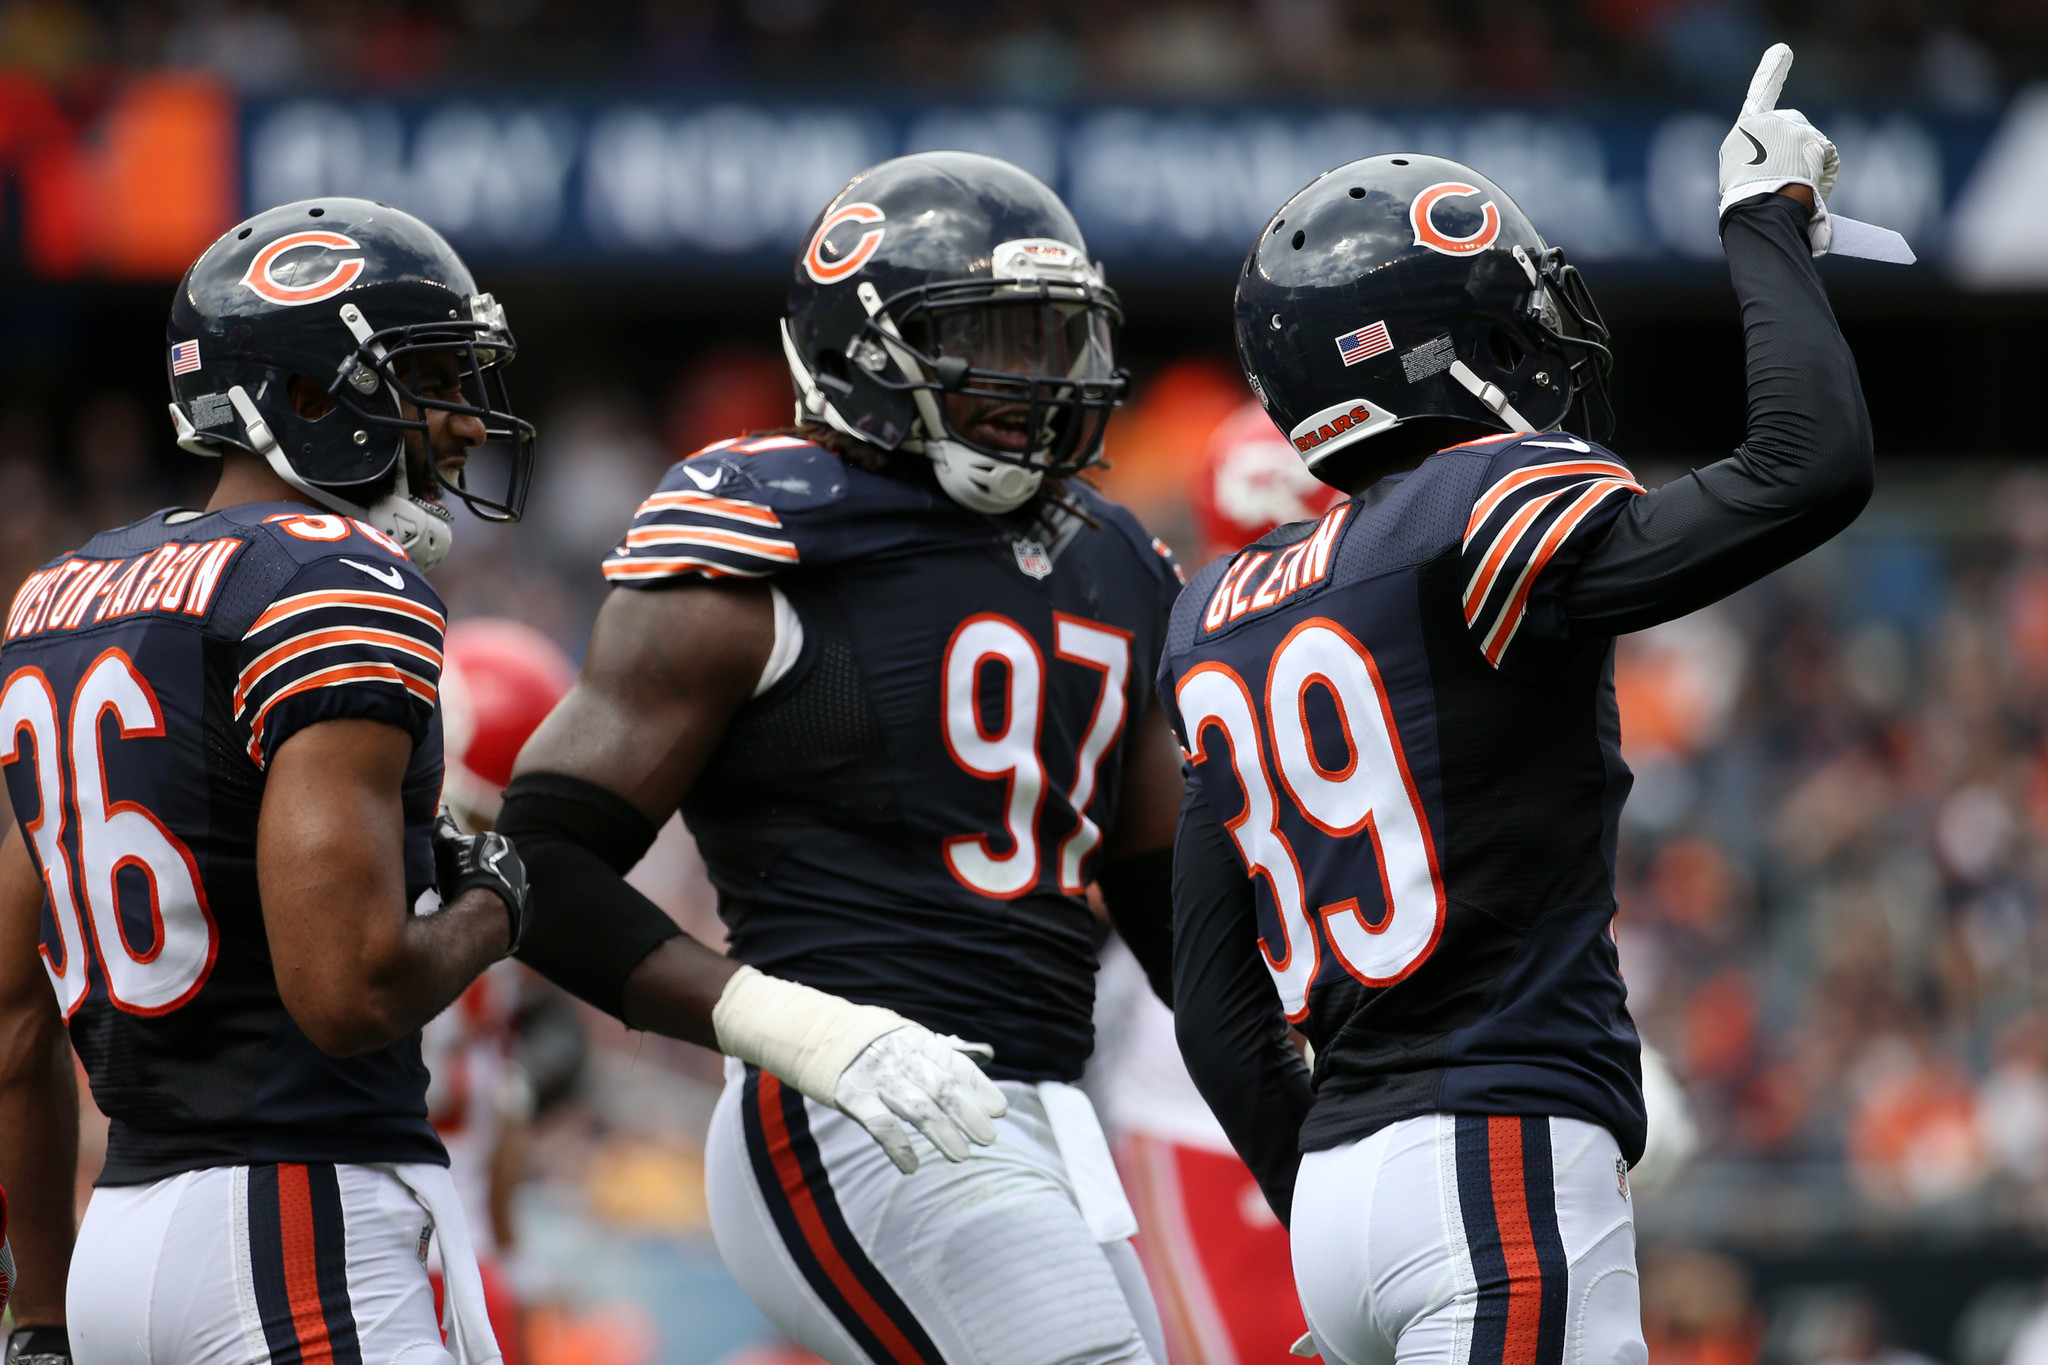 Ct-bears-defense-shows-signs-spt-0828-20160827